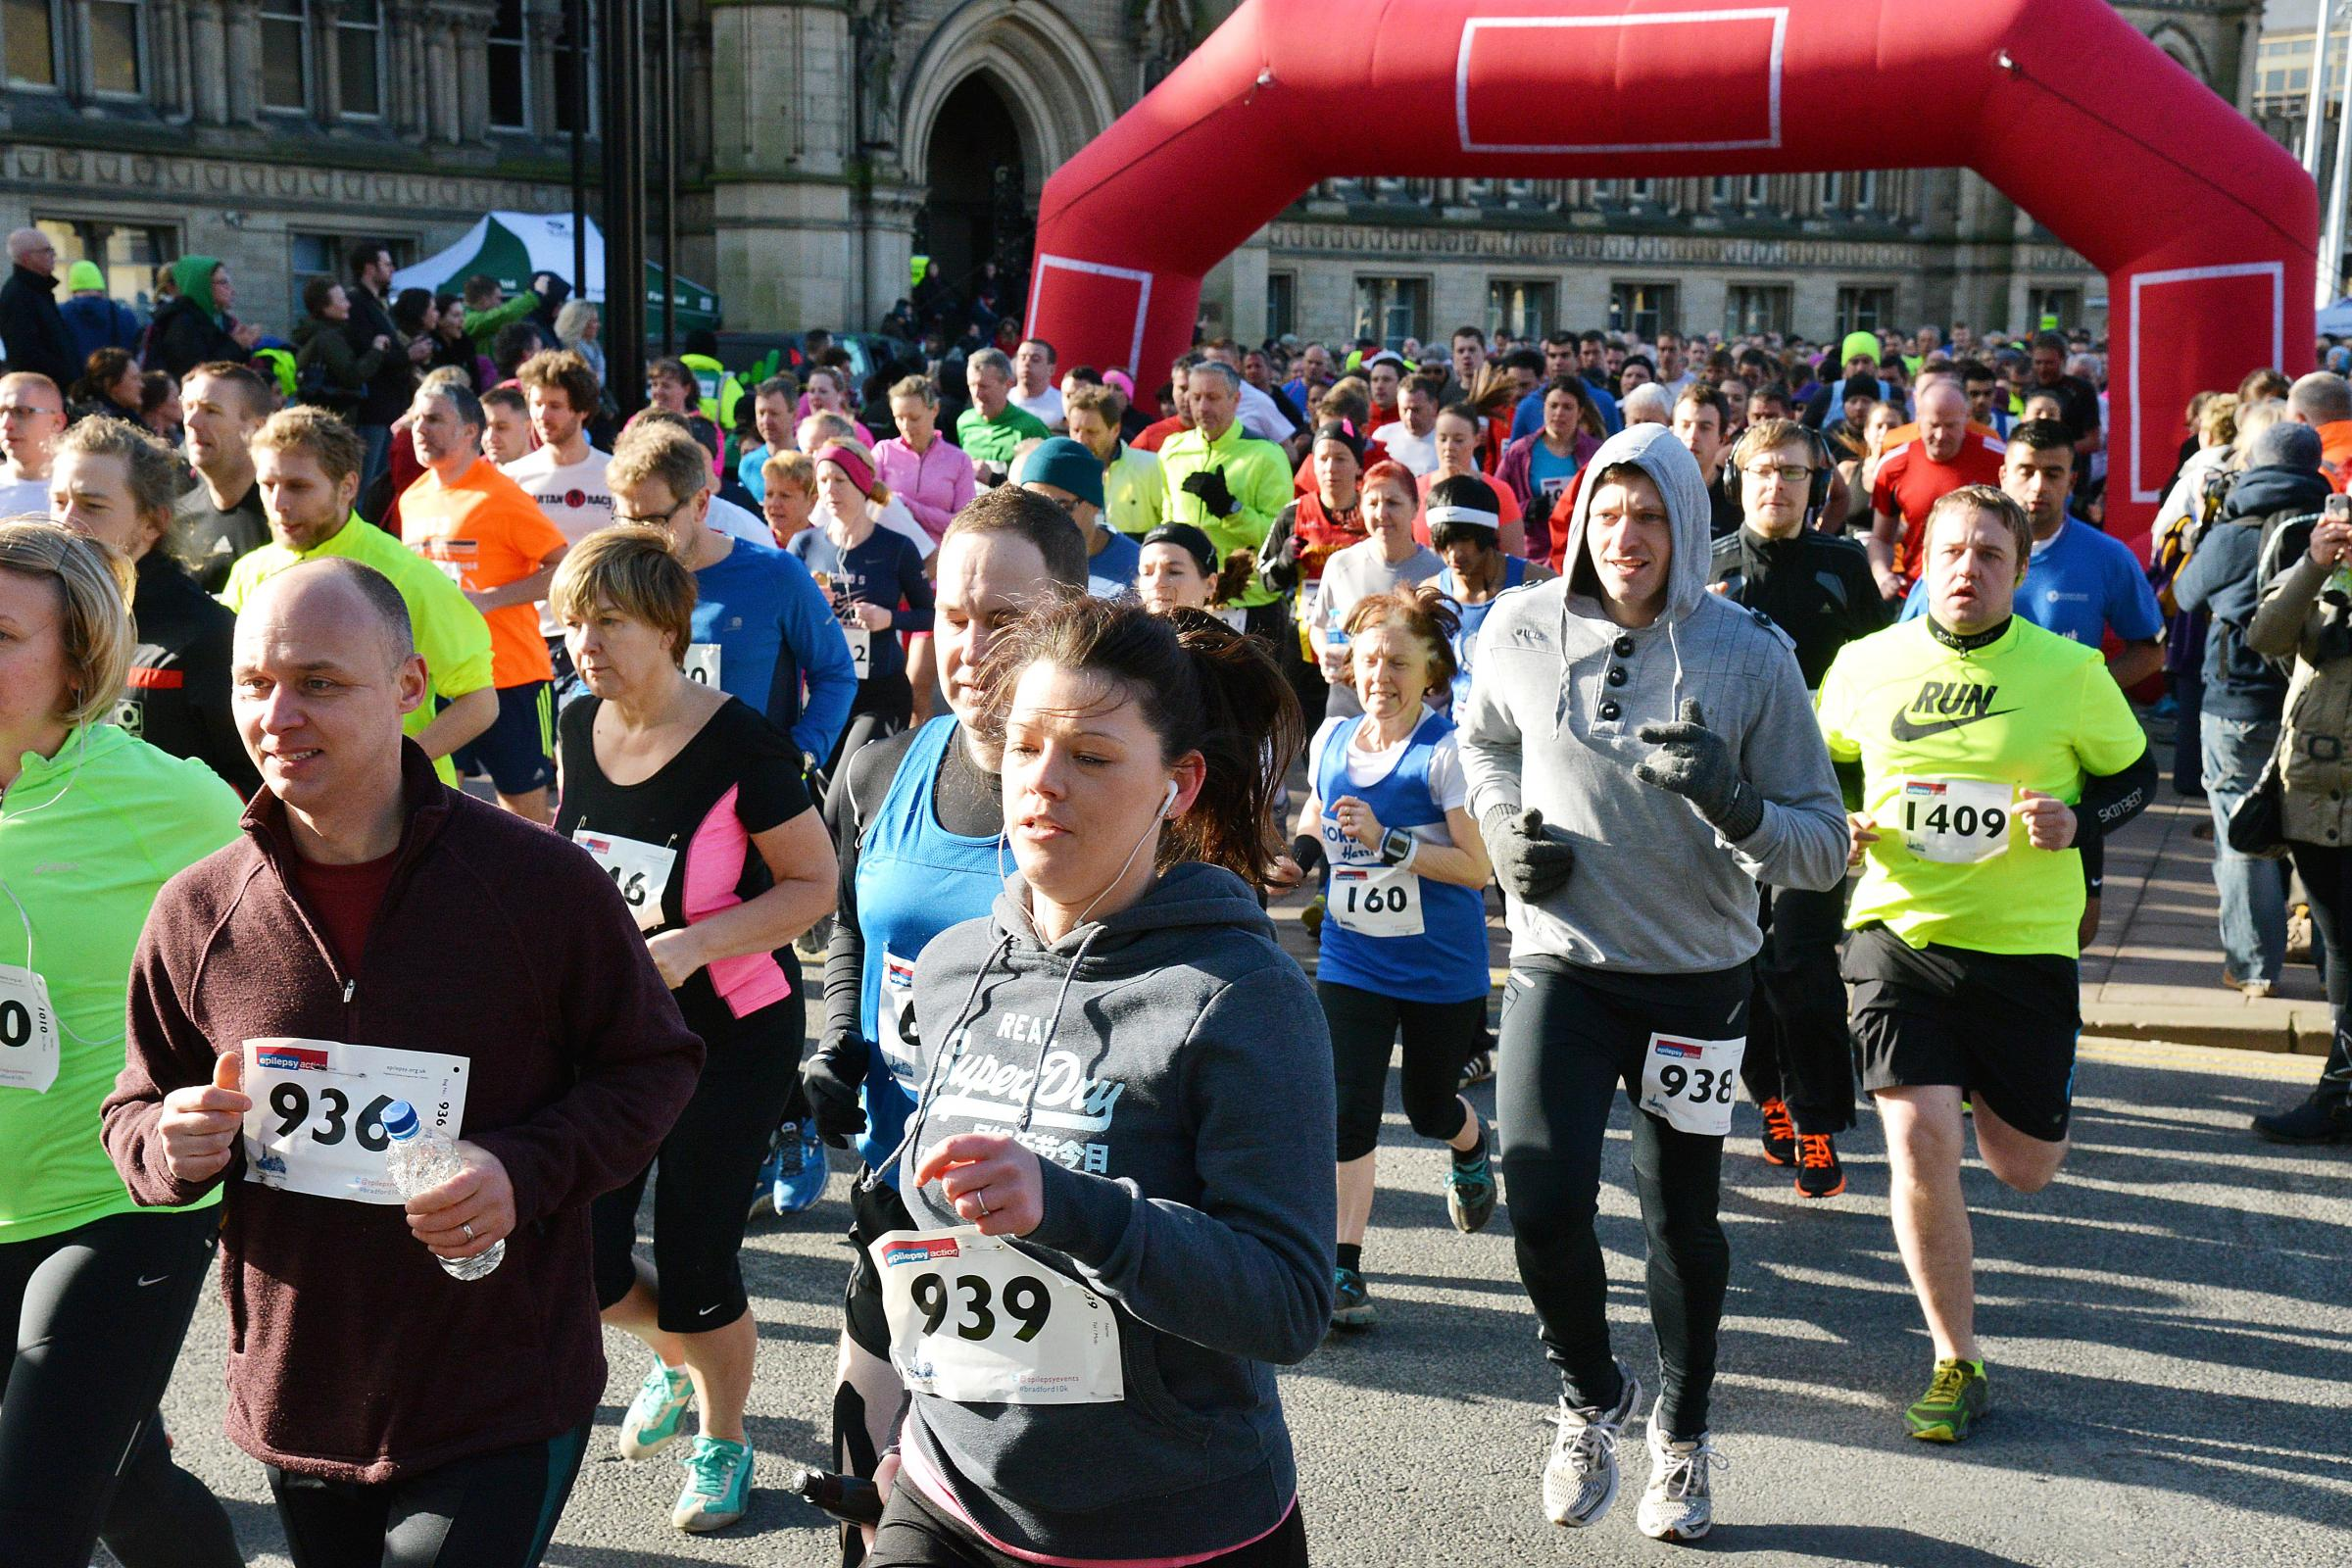 Record number of runners take part in Epilepsy Action 10k in Bradford - see full results